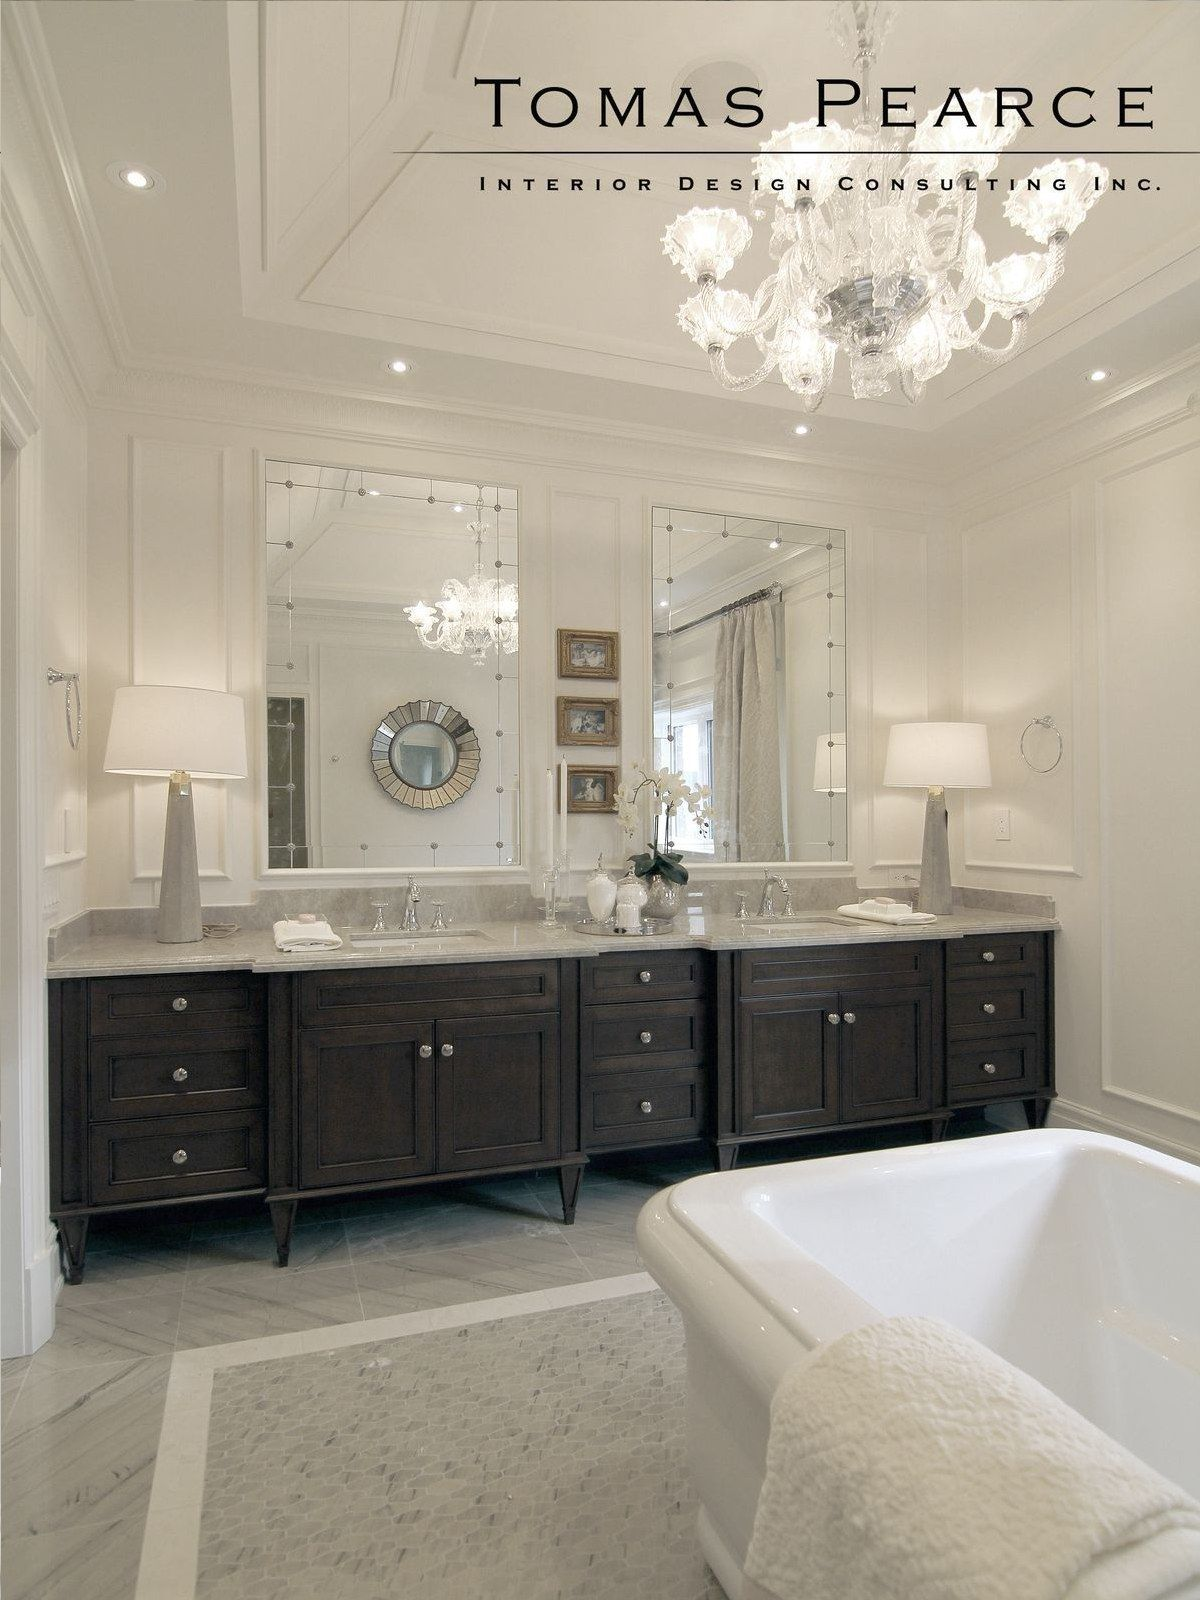 Bathroom Decor Create A Splash With Your Bathroom Design By